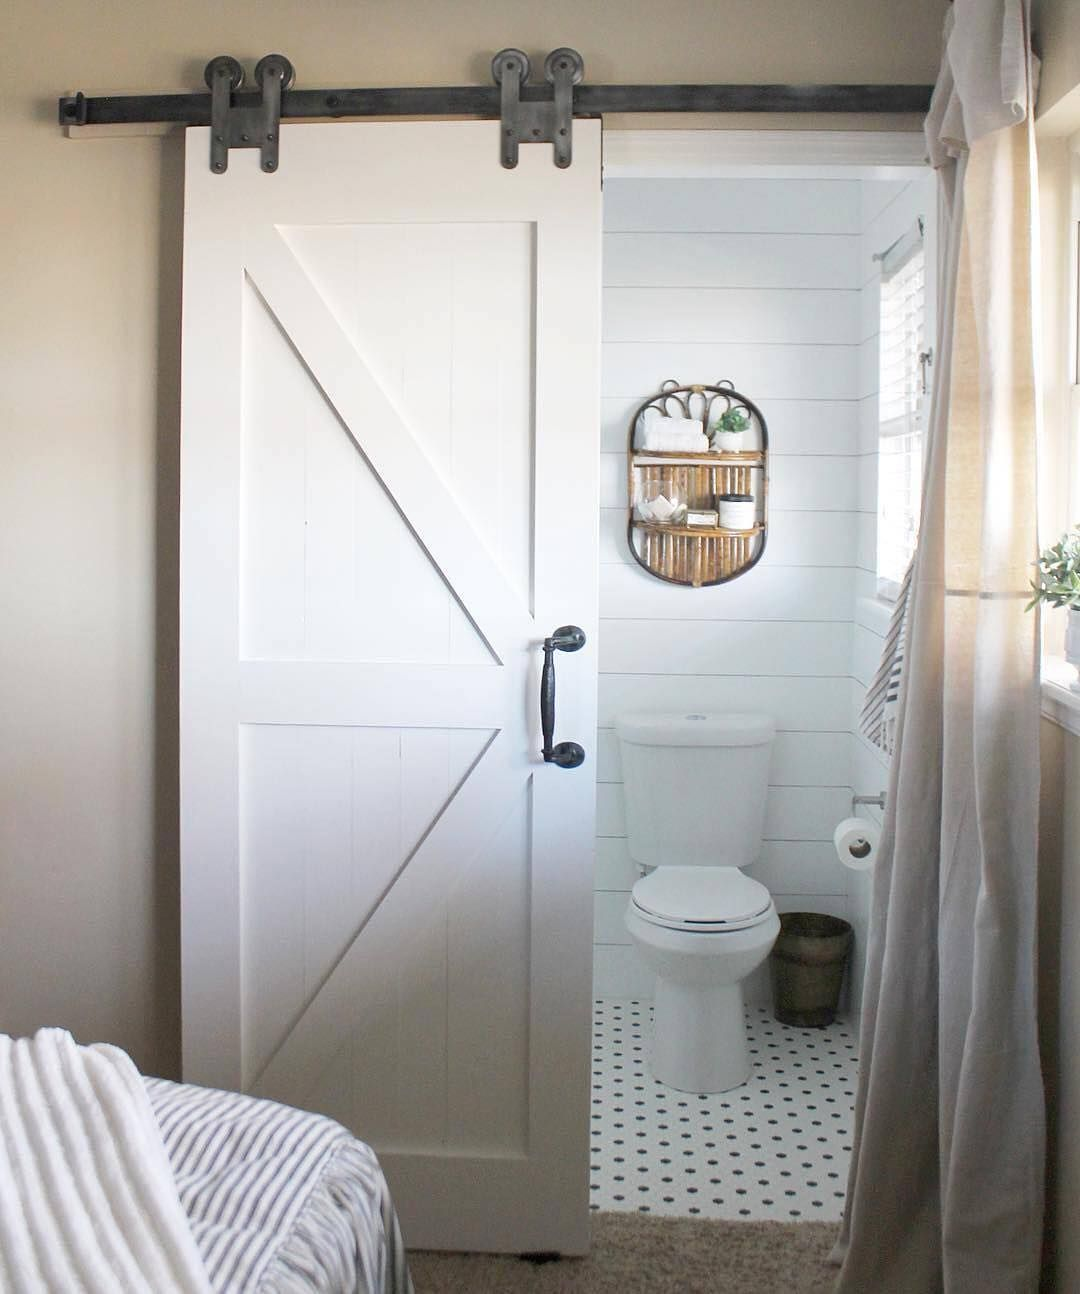 Farmhouseforfive Just Remodeled Her Bathroom With The H Strap